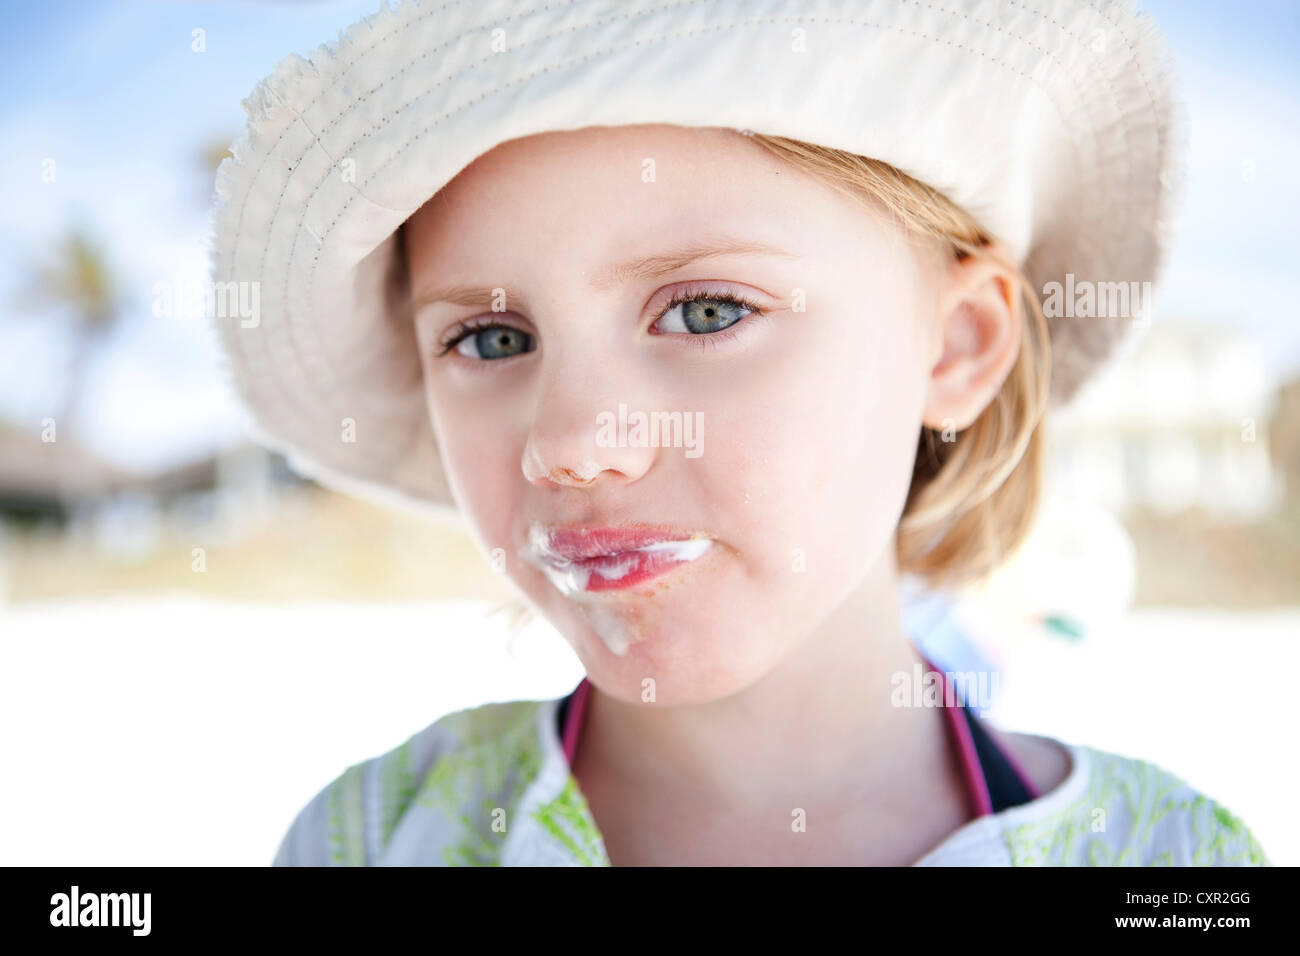 little girl mouth   hot girls wallpaper